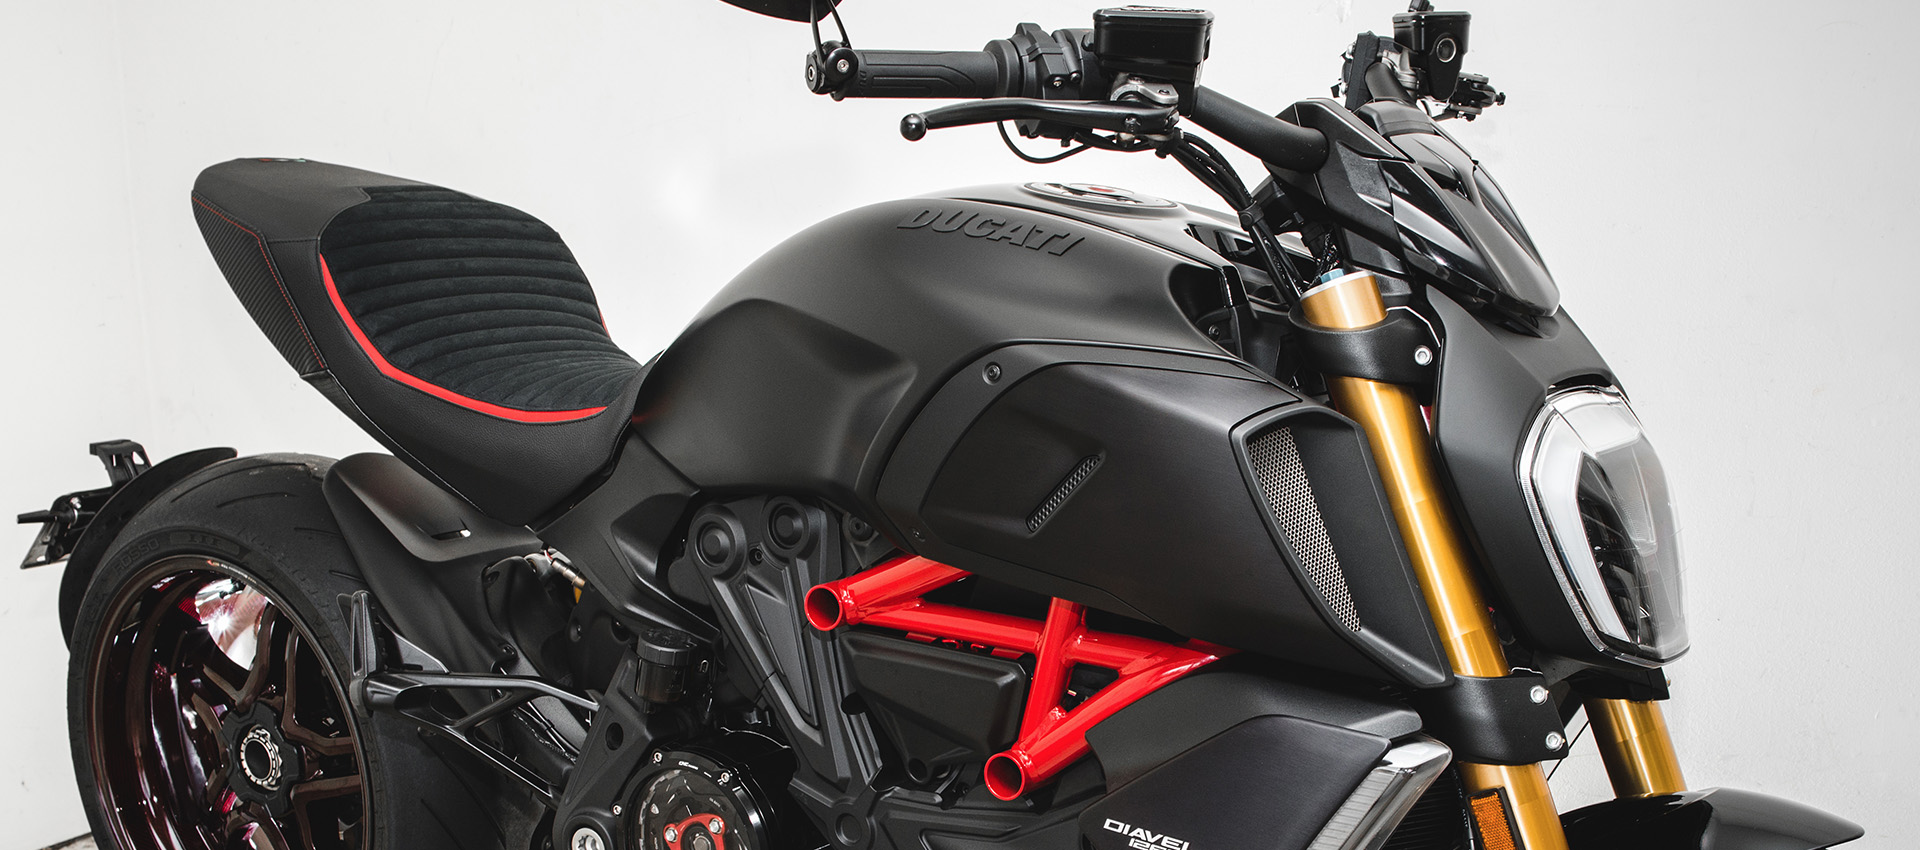 Ducati Diavel 1260 Luimoto Seat Covers